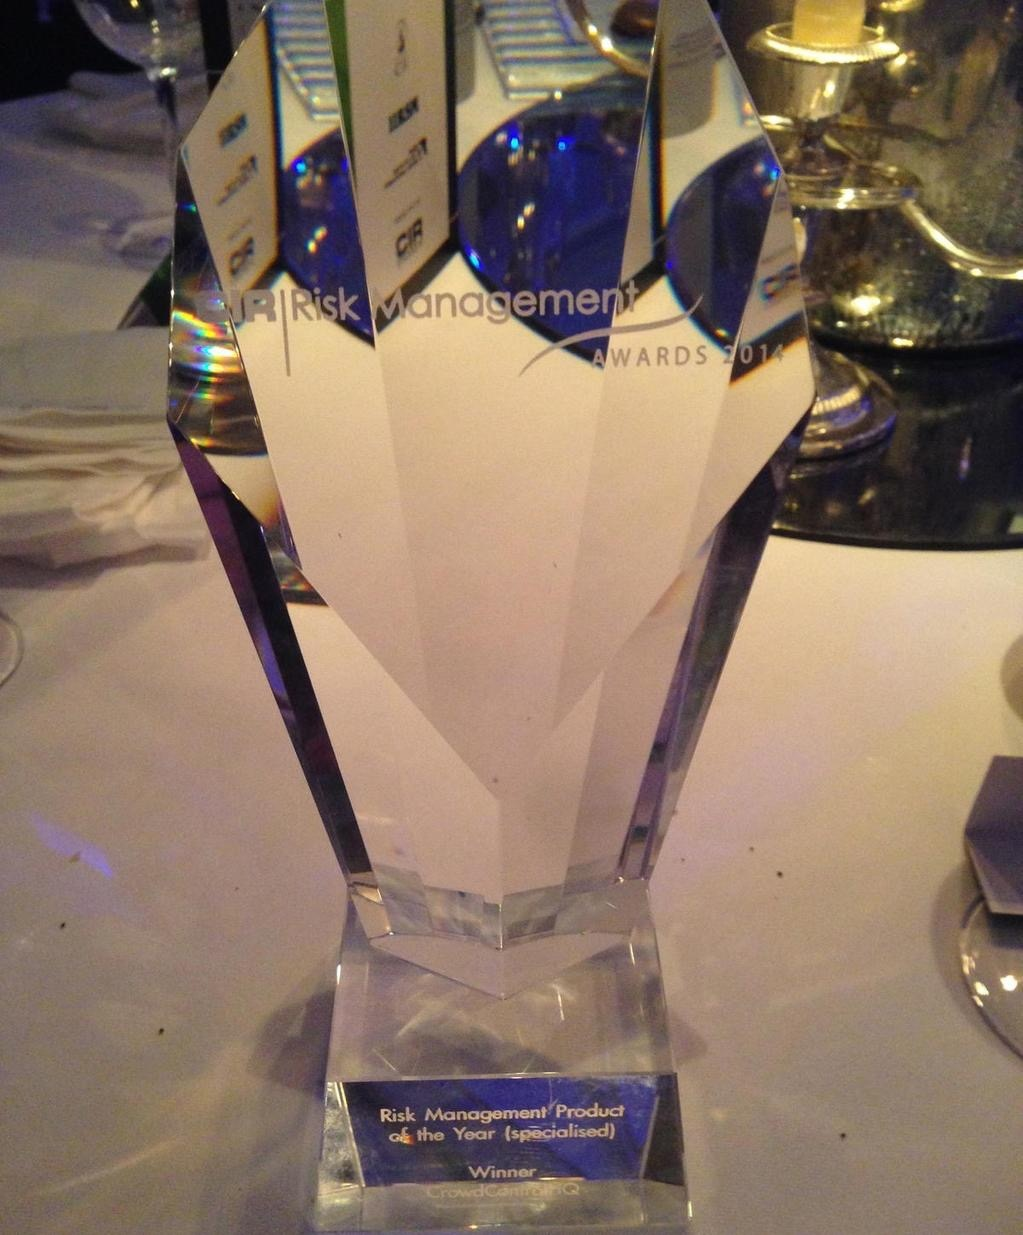 CIR Risk Management Awards 2014 | Risk Management Product of the Year (Specialised) Winner CrowdControlHQ